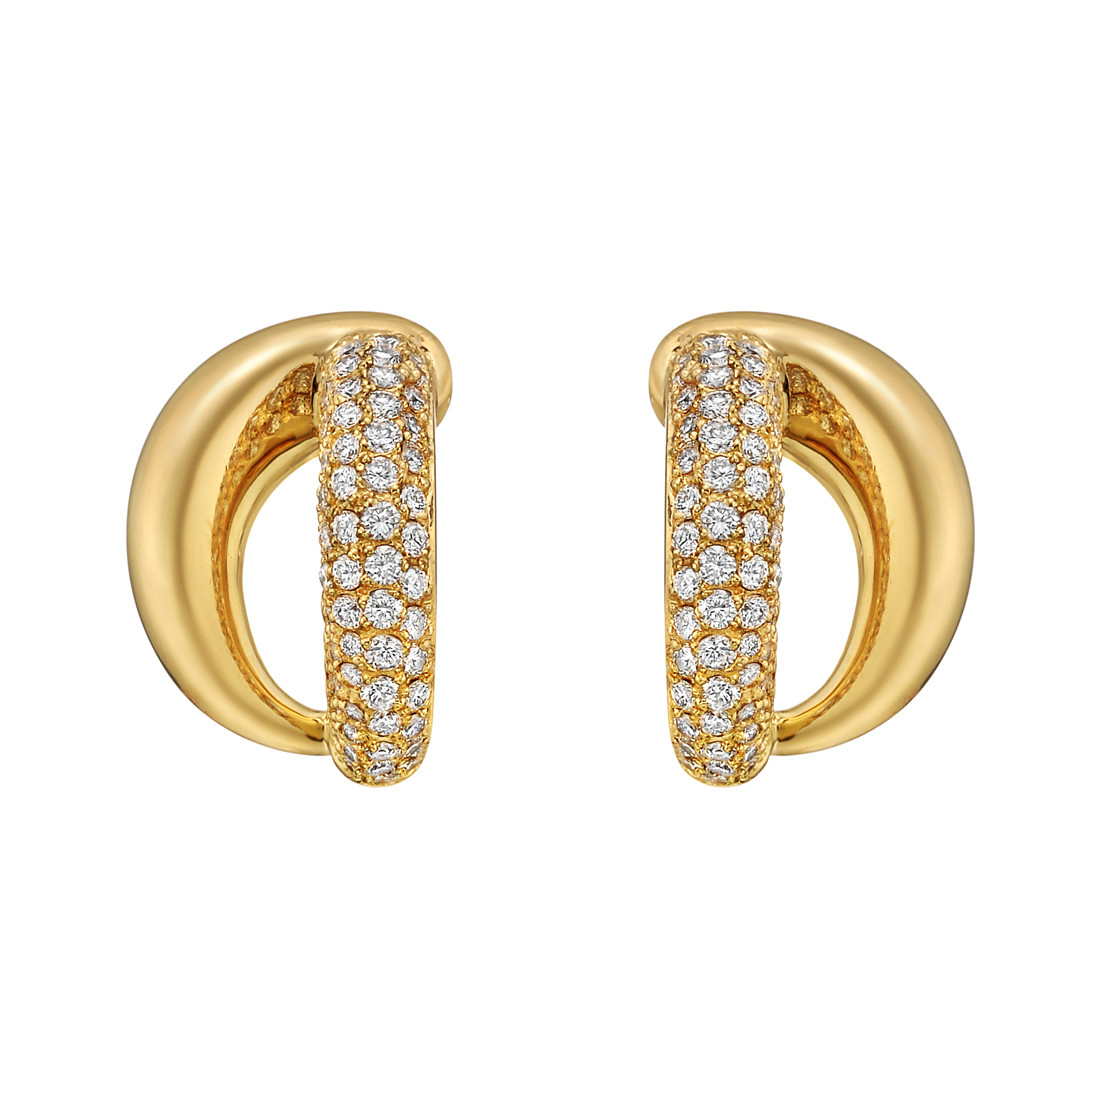 18k Yellow Gold & Diamond Double Split Earrings